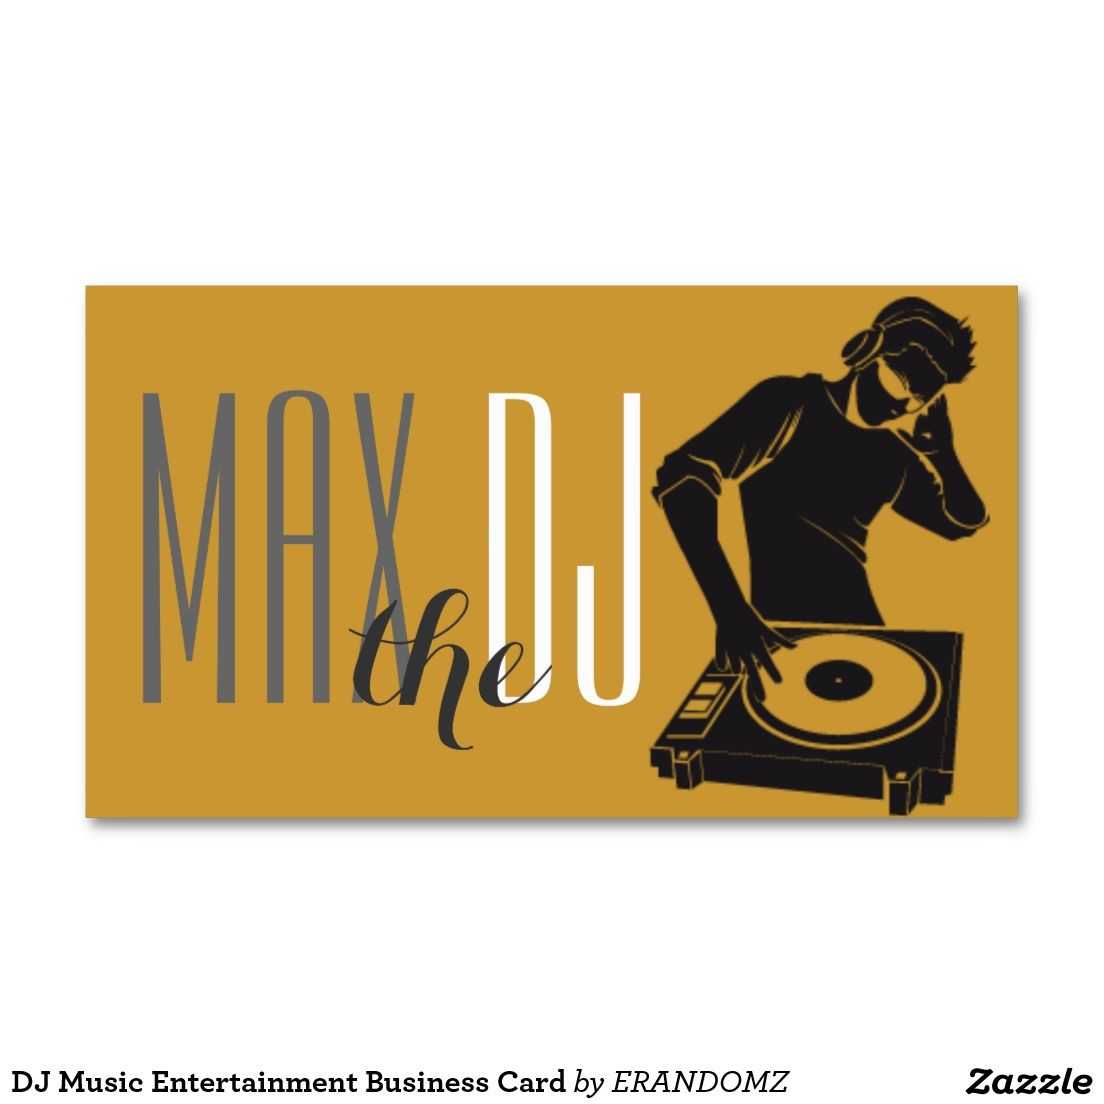 DJ Music Entertainment Business Card | Dj business cards | Pinterest ...